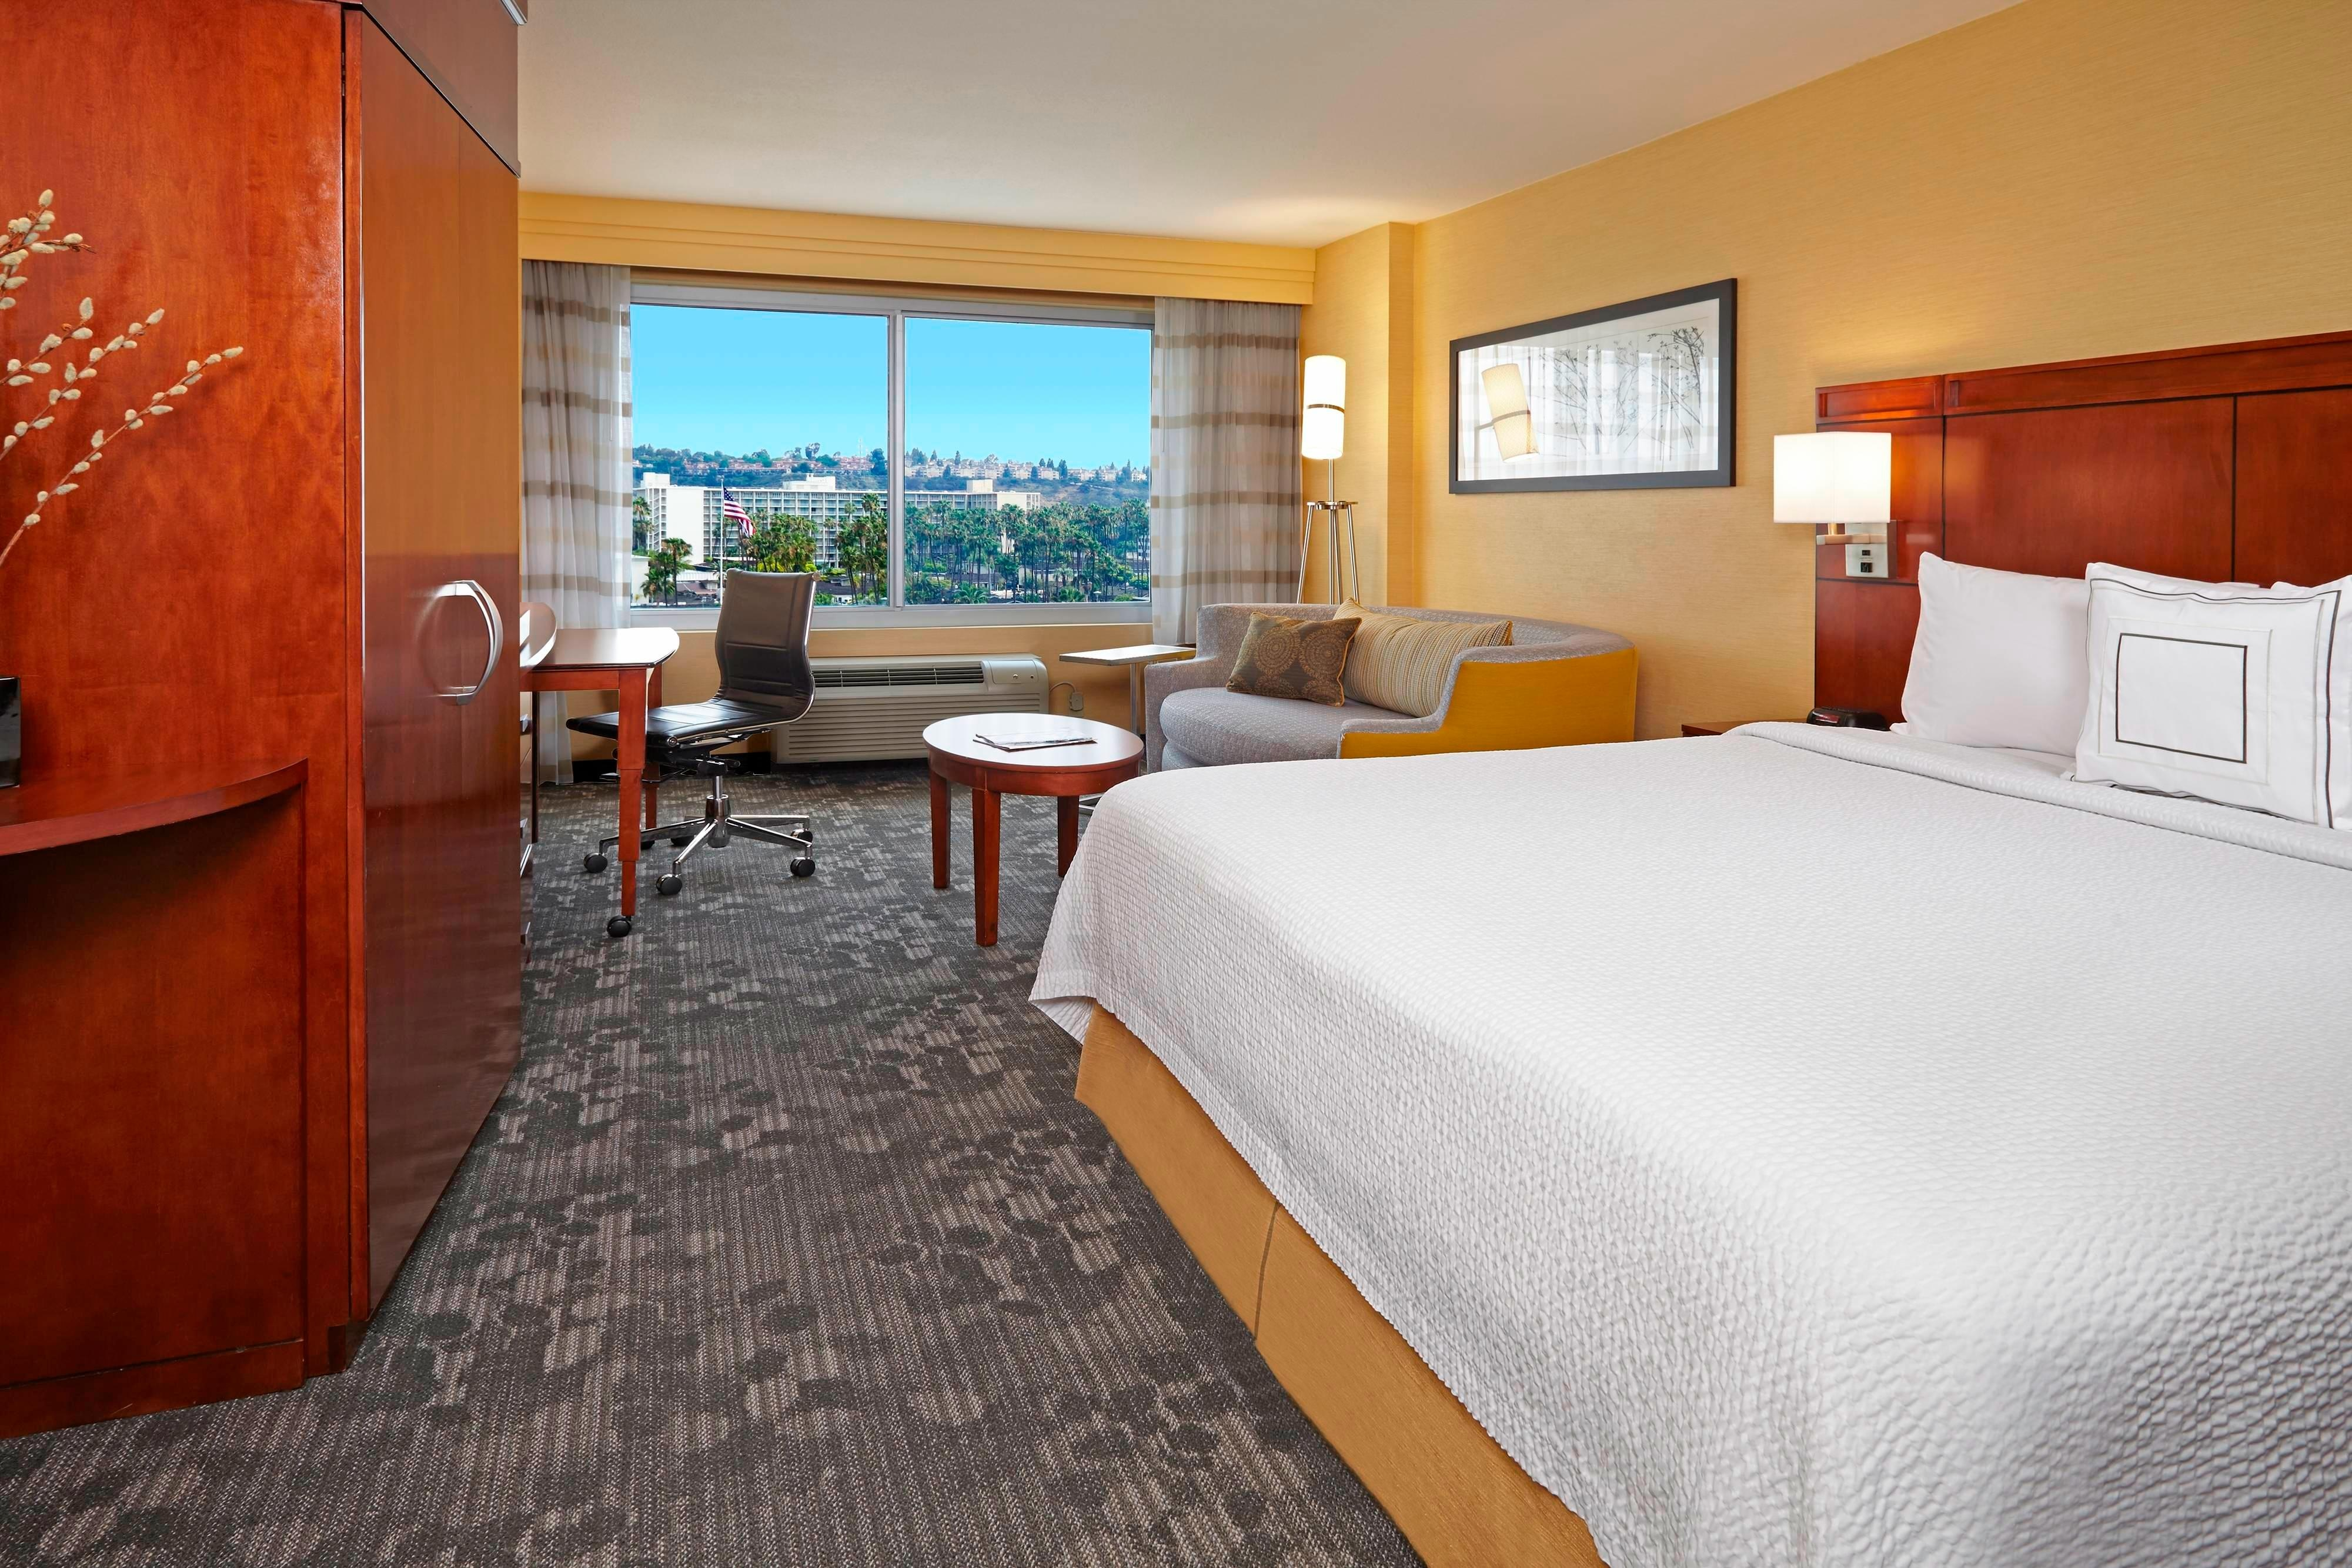 h tel marriott san diego h tel courtyard by marriott. Black Bedroom Furniture Sets. Home Design Ideas